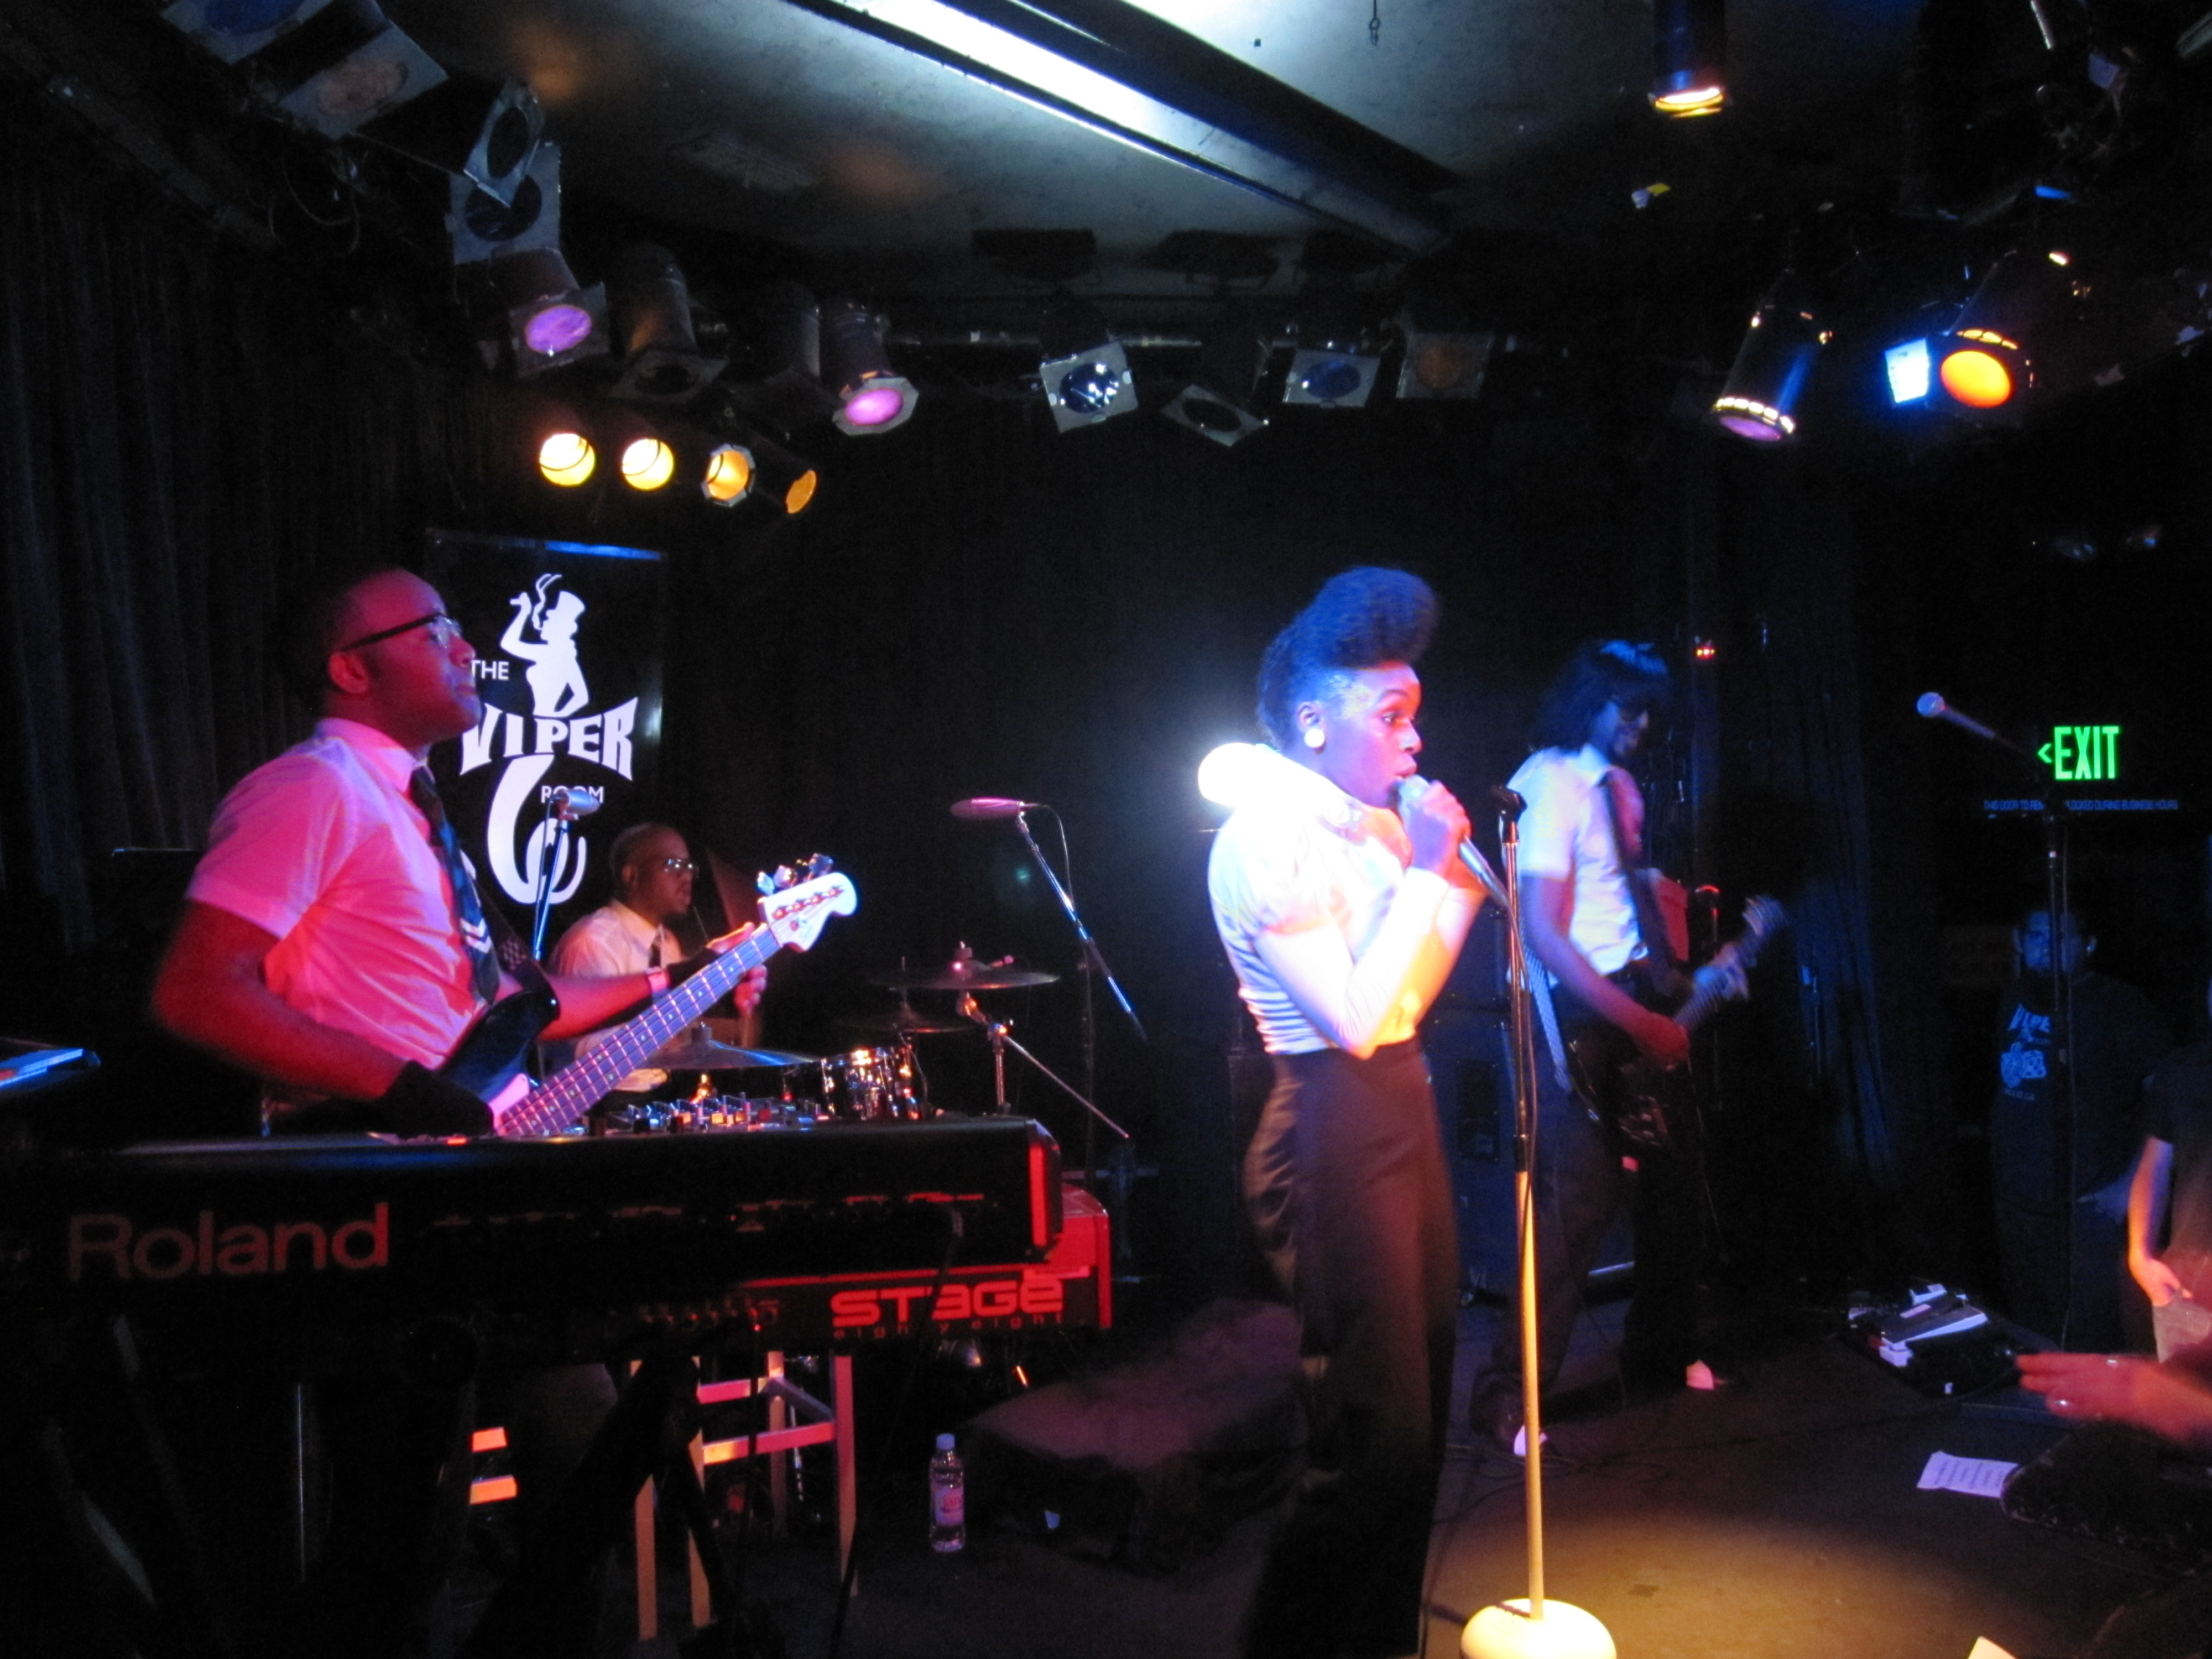 Janelle Monae: Emotion Picture Live at The Viper Room   Rock is a ...